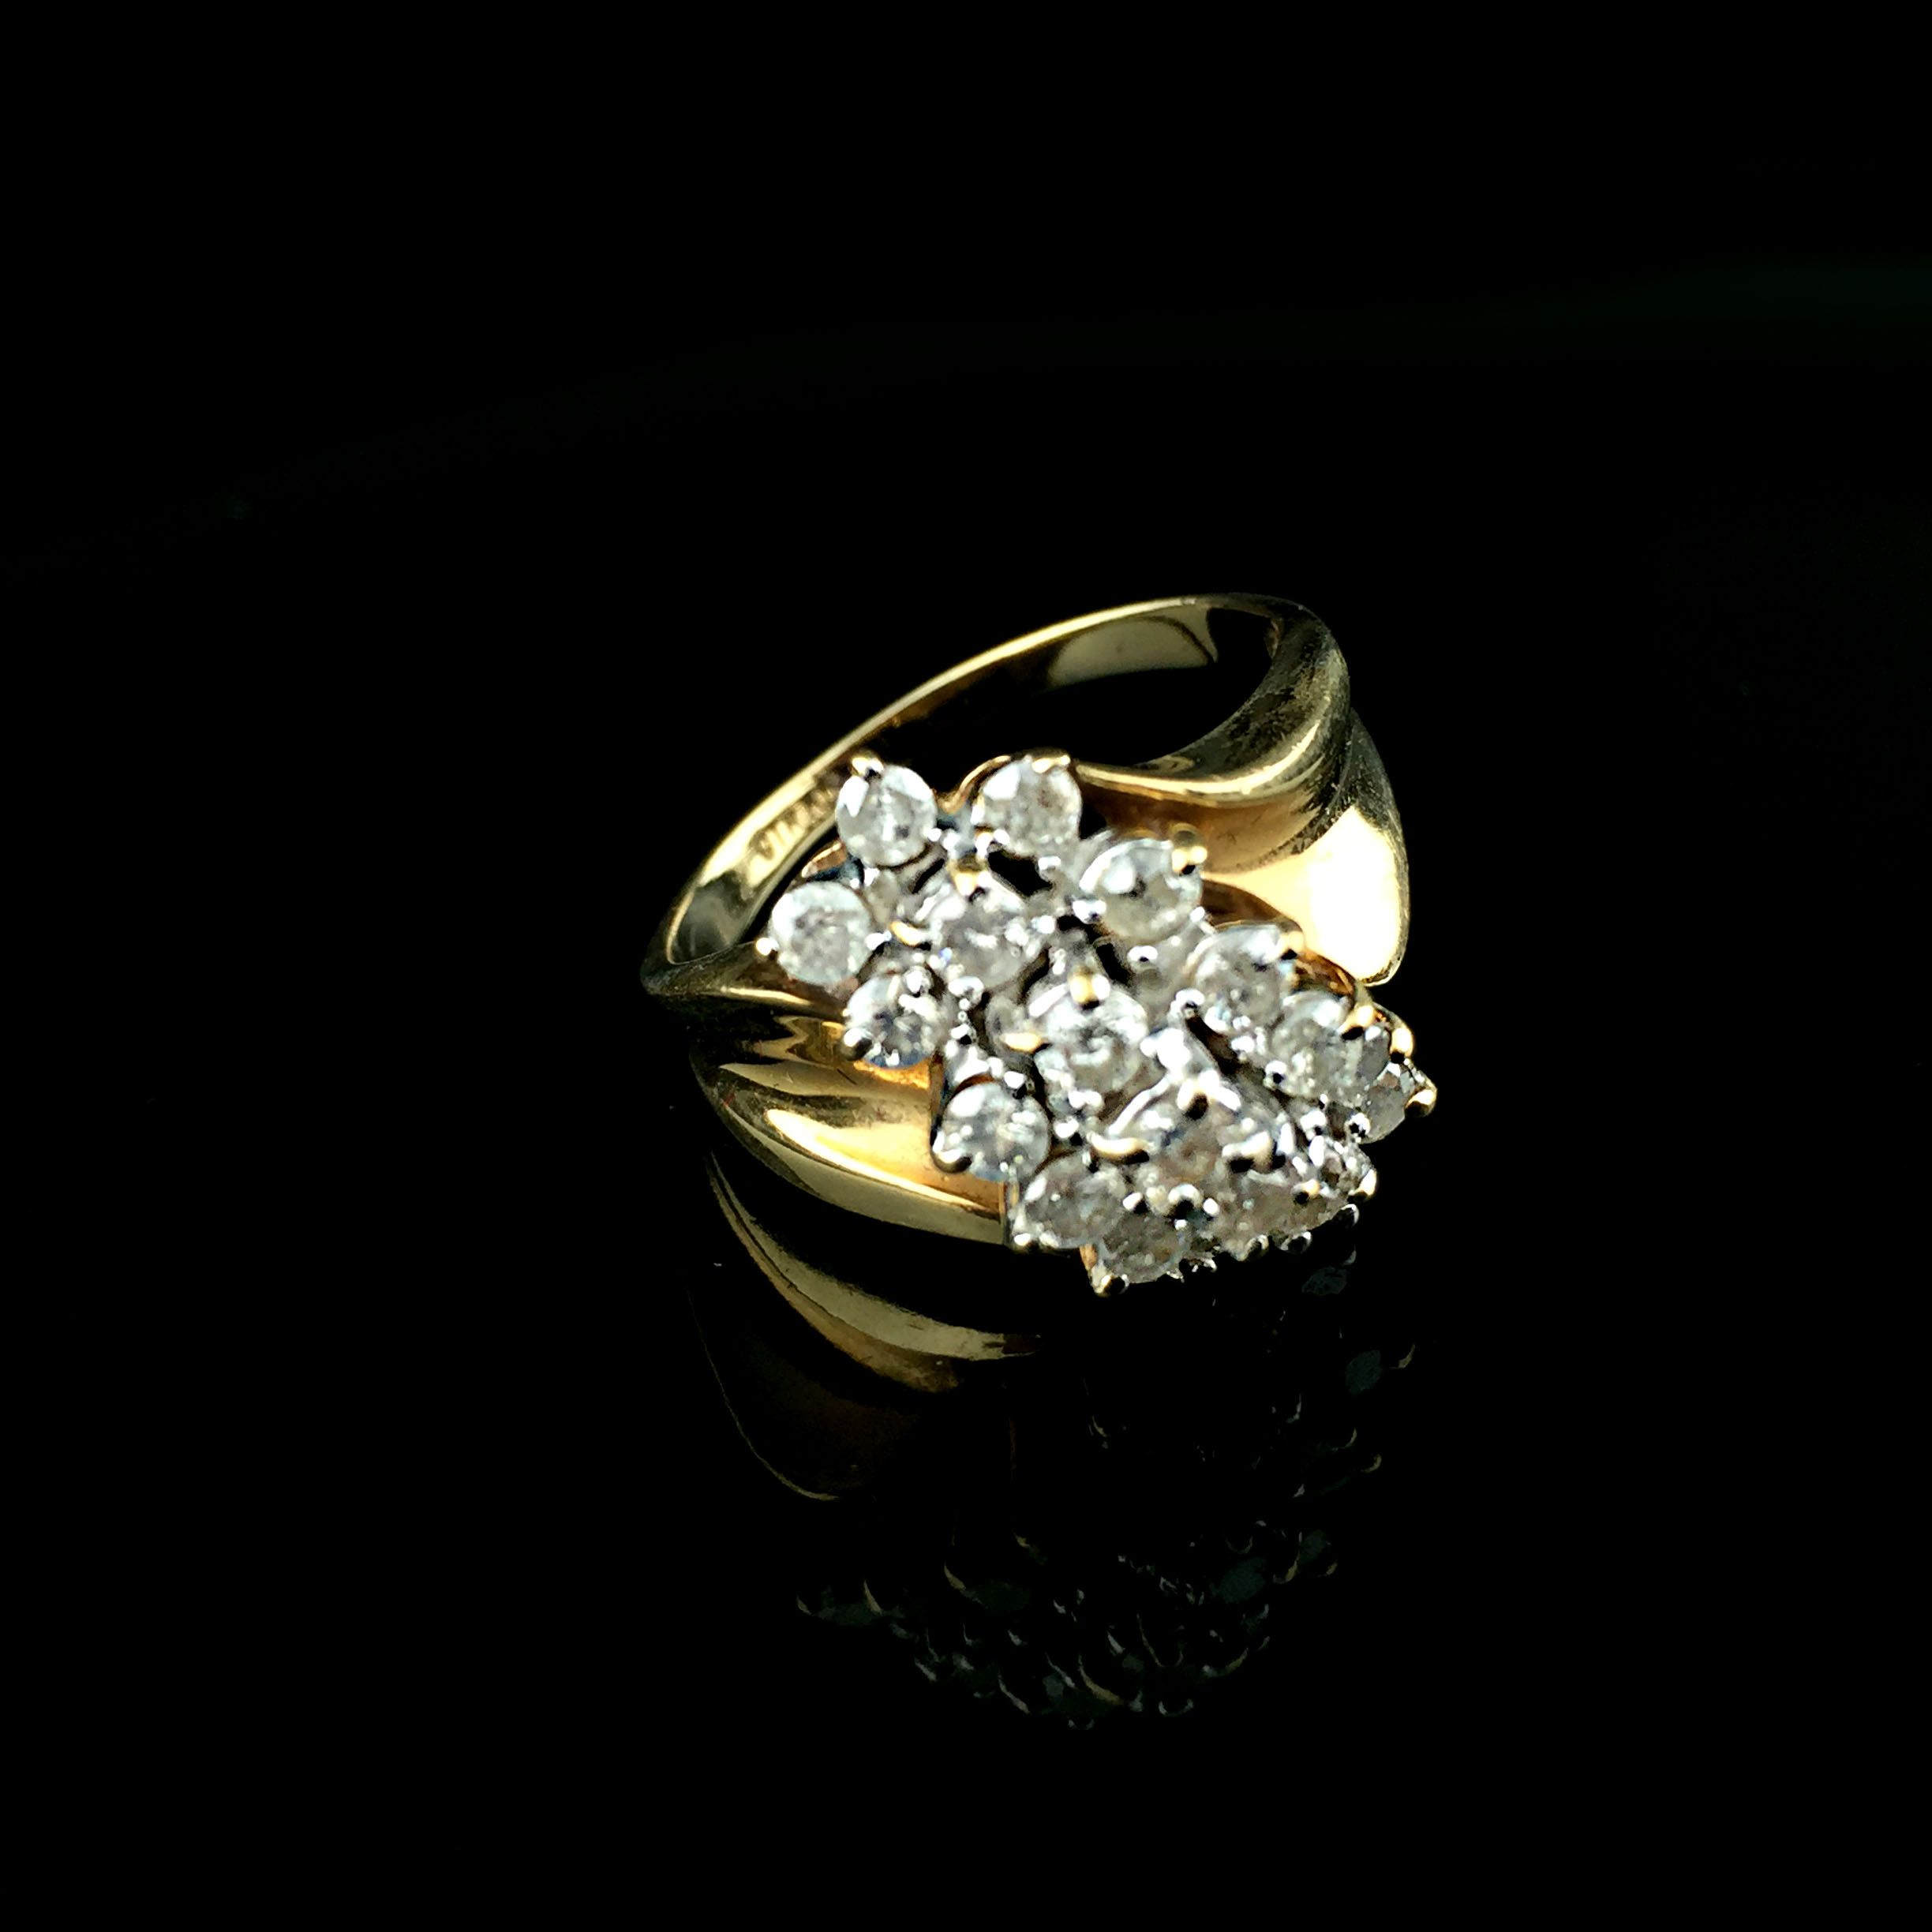 unique engagement signet rings band vintage pin women crown style ring gold wedding floral flower for